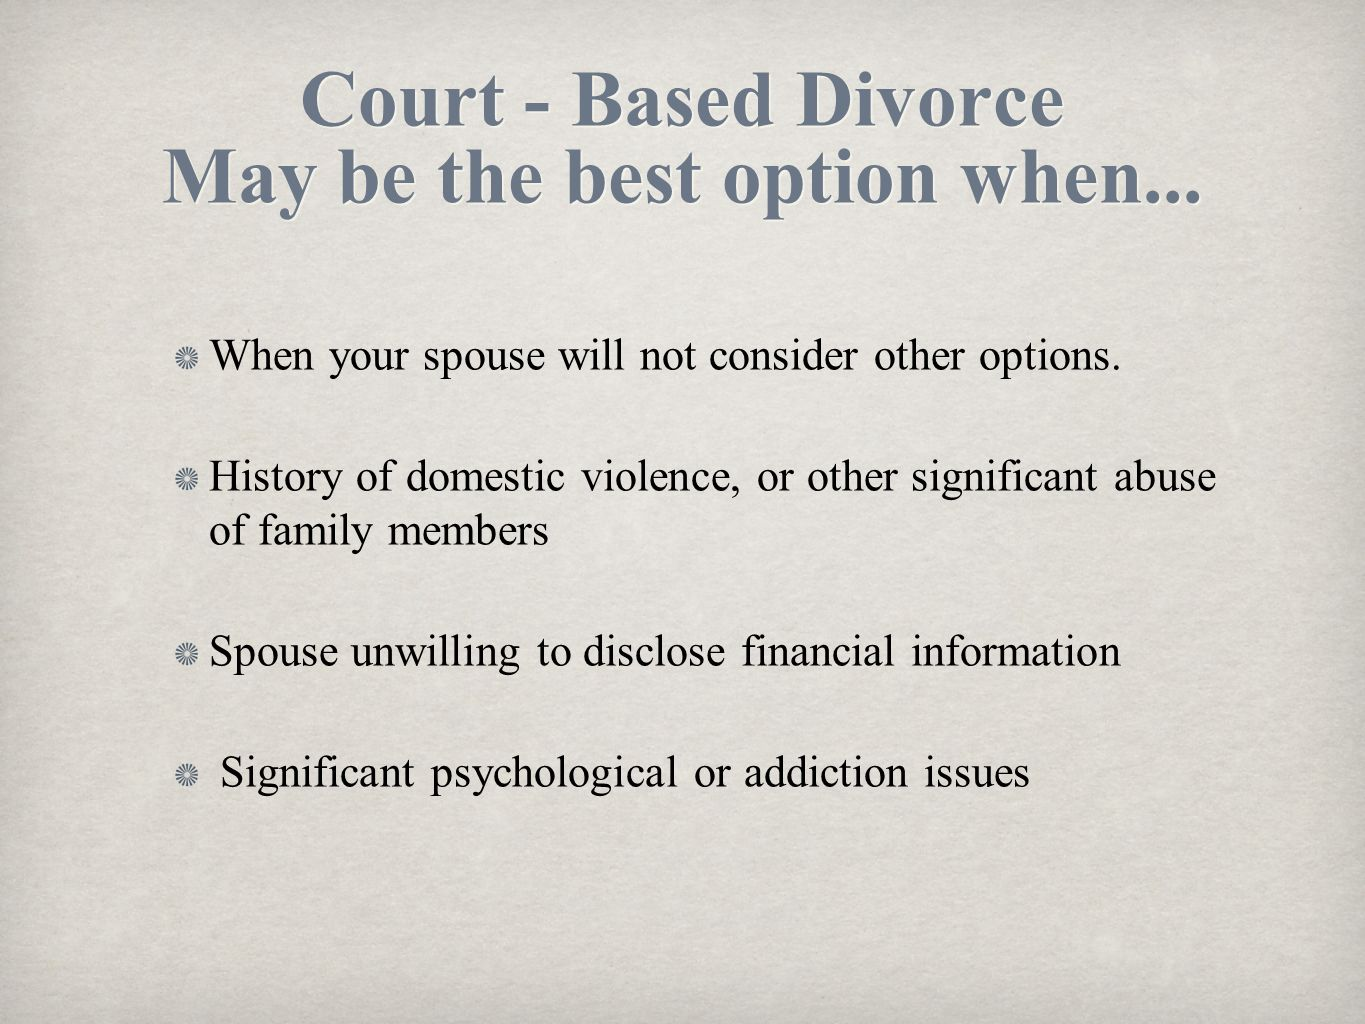 Court - Based Divorce May be the best option when...